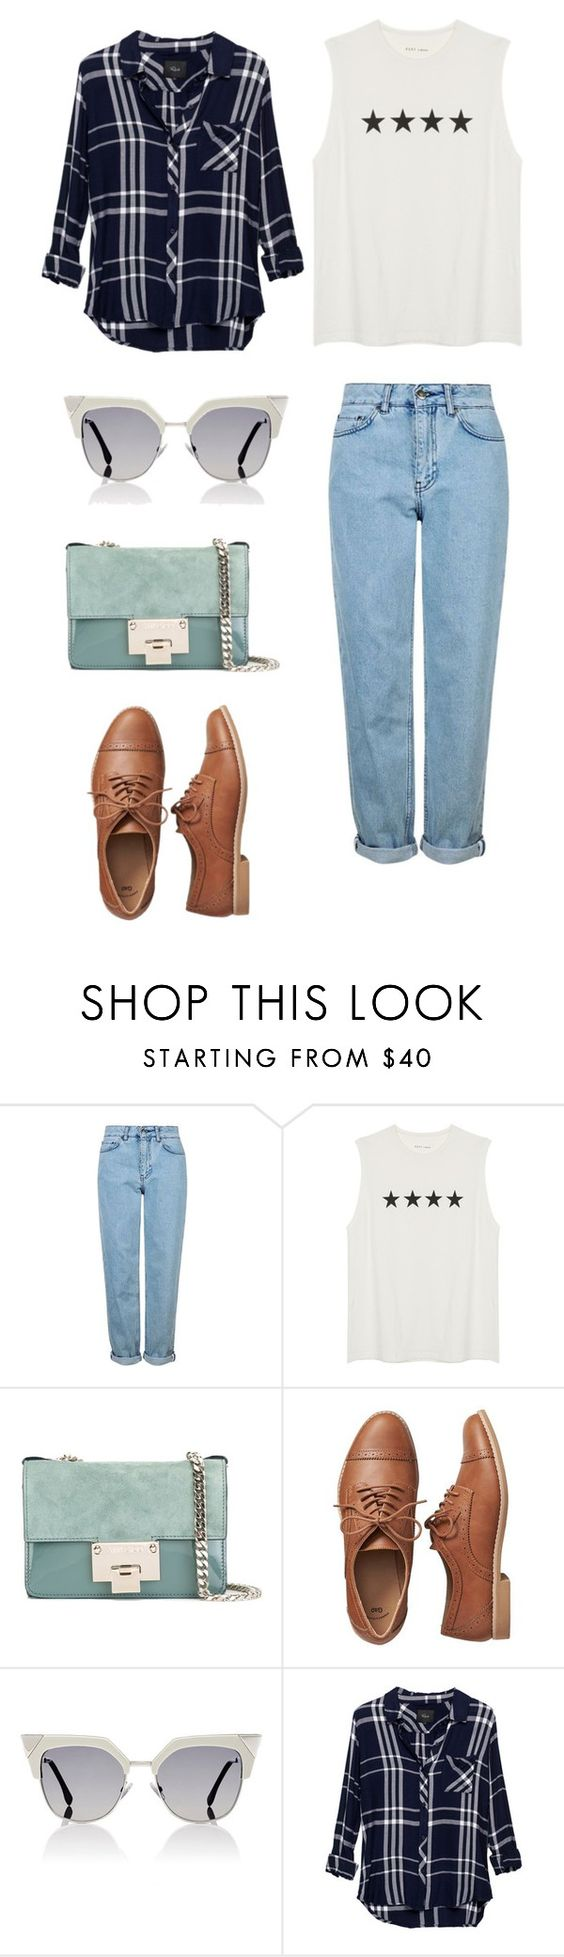 """Untitled #213"" by mcbscap on Polyvore featuring Topshop, Jimmy Choo, Gap, Fendi and Rails"